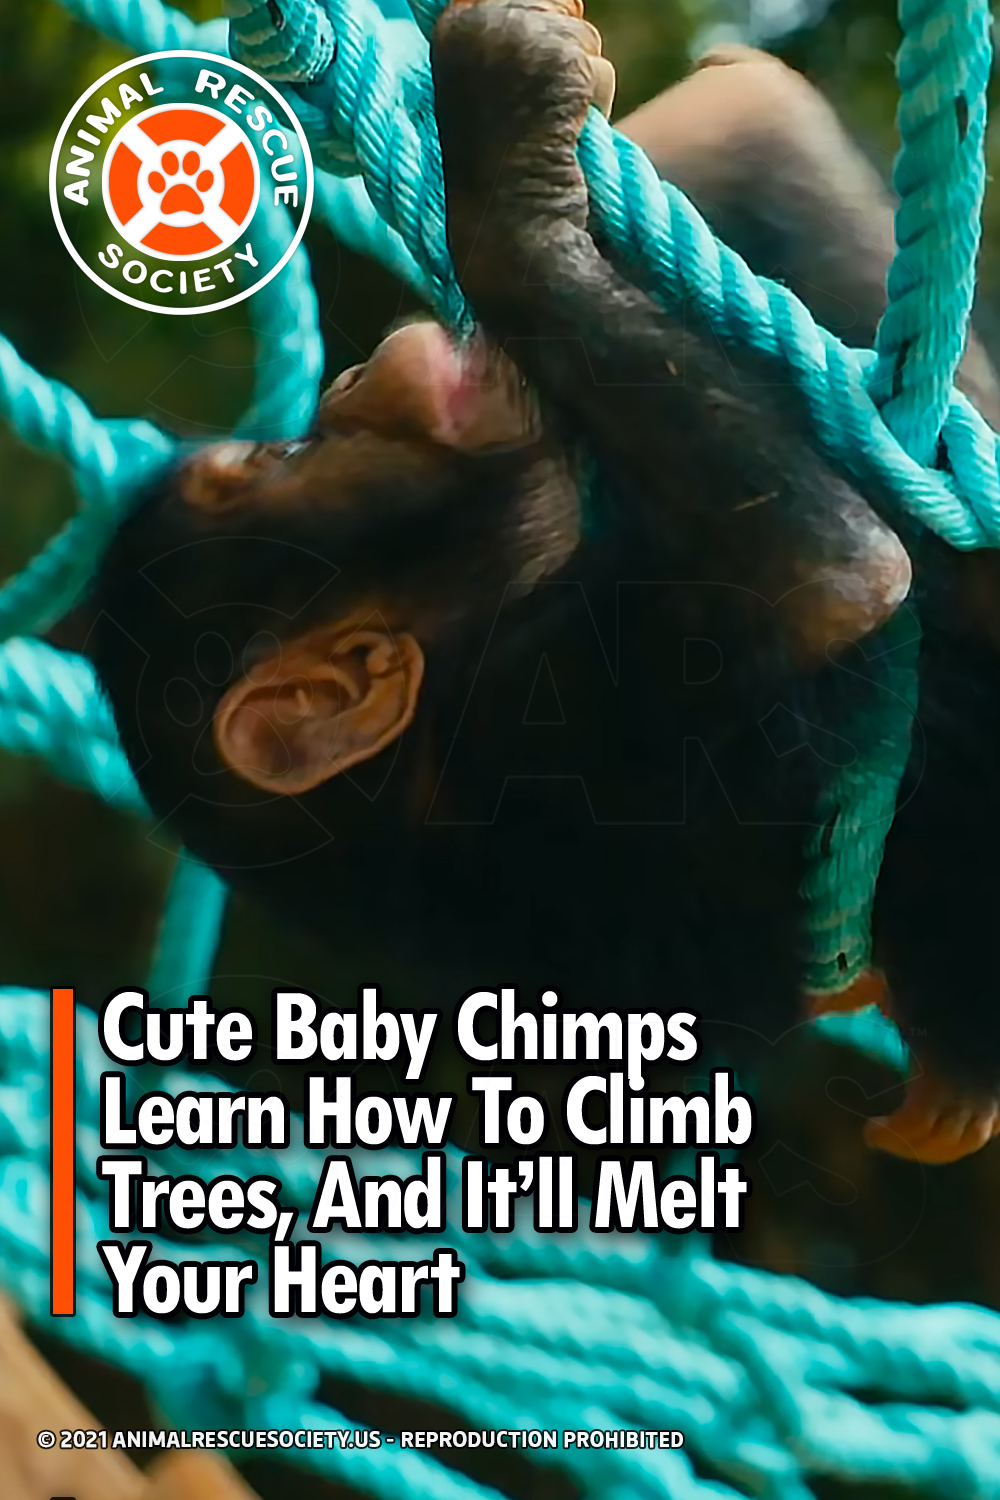 Cute Baby Chimps Learn How To Climb Trees, And It'll Melt Your Heart